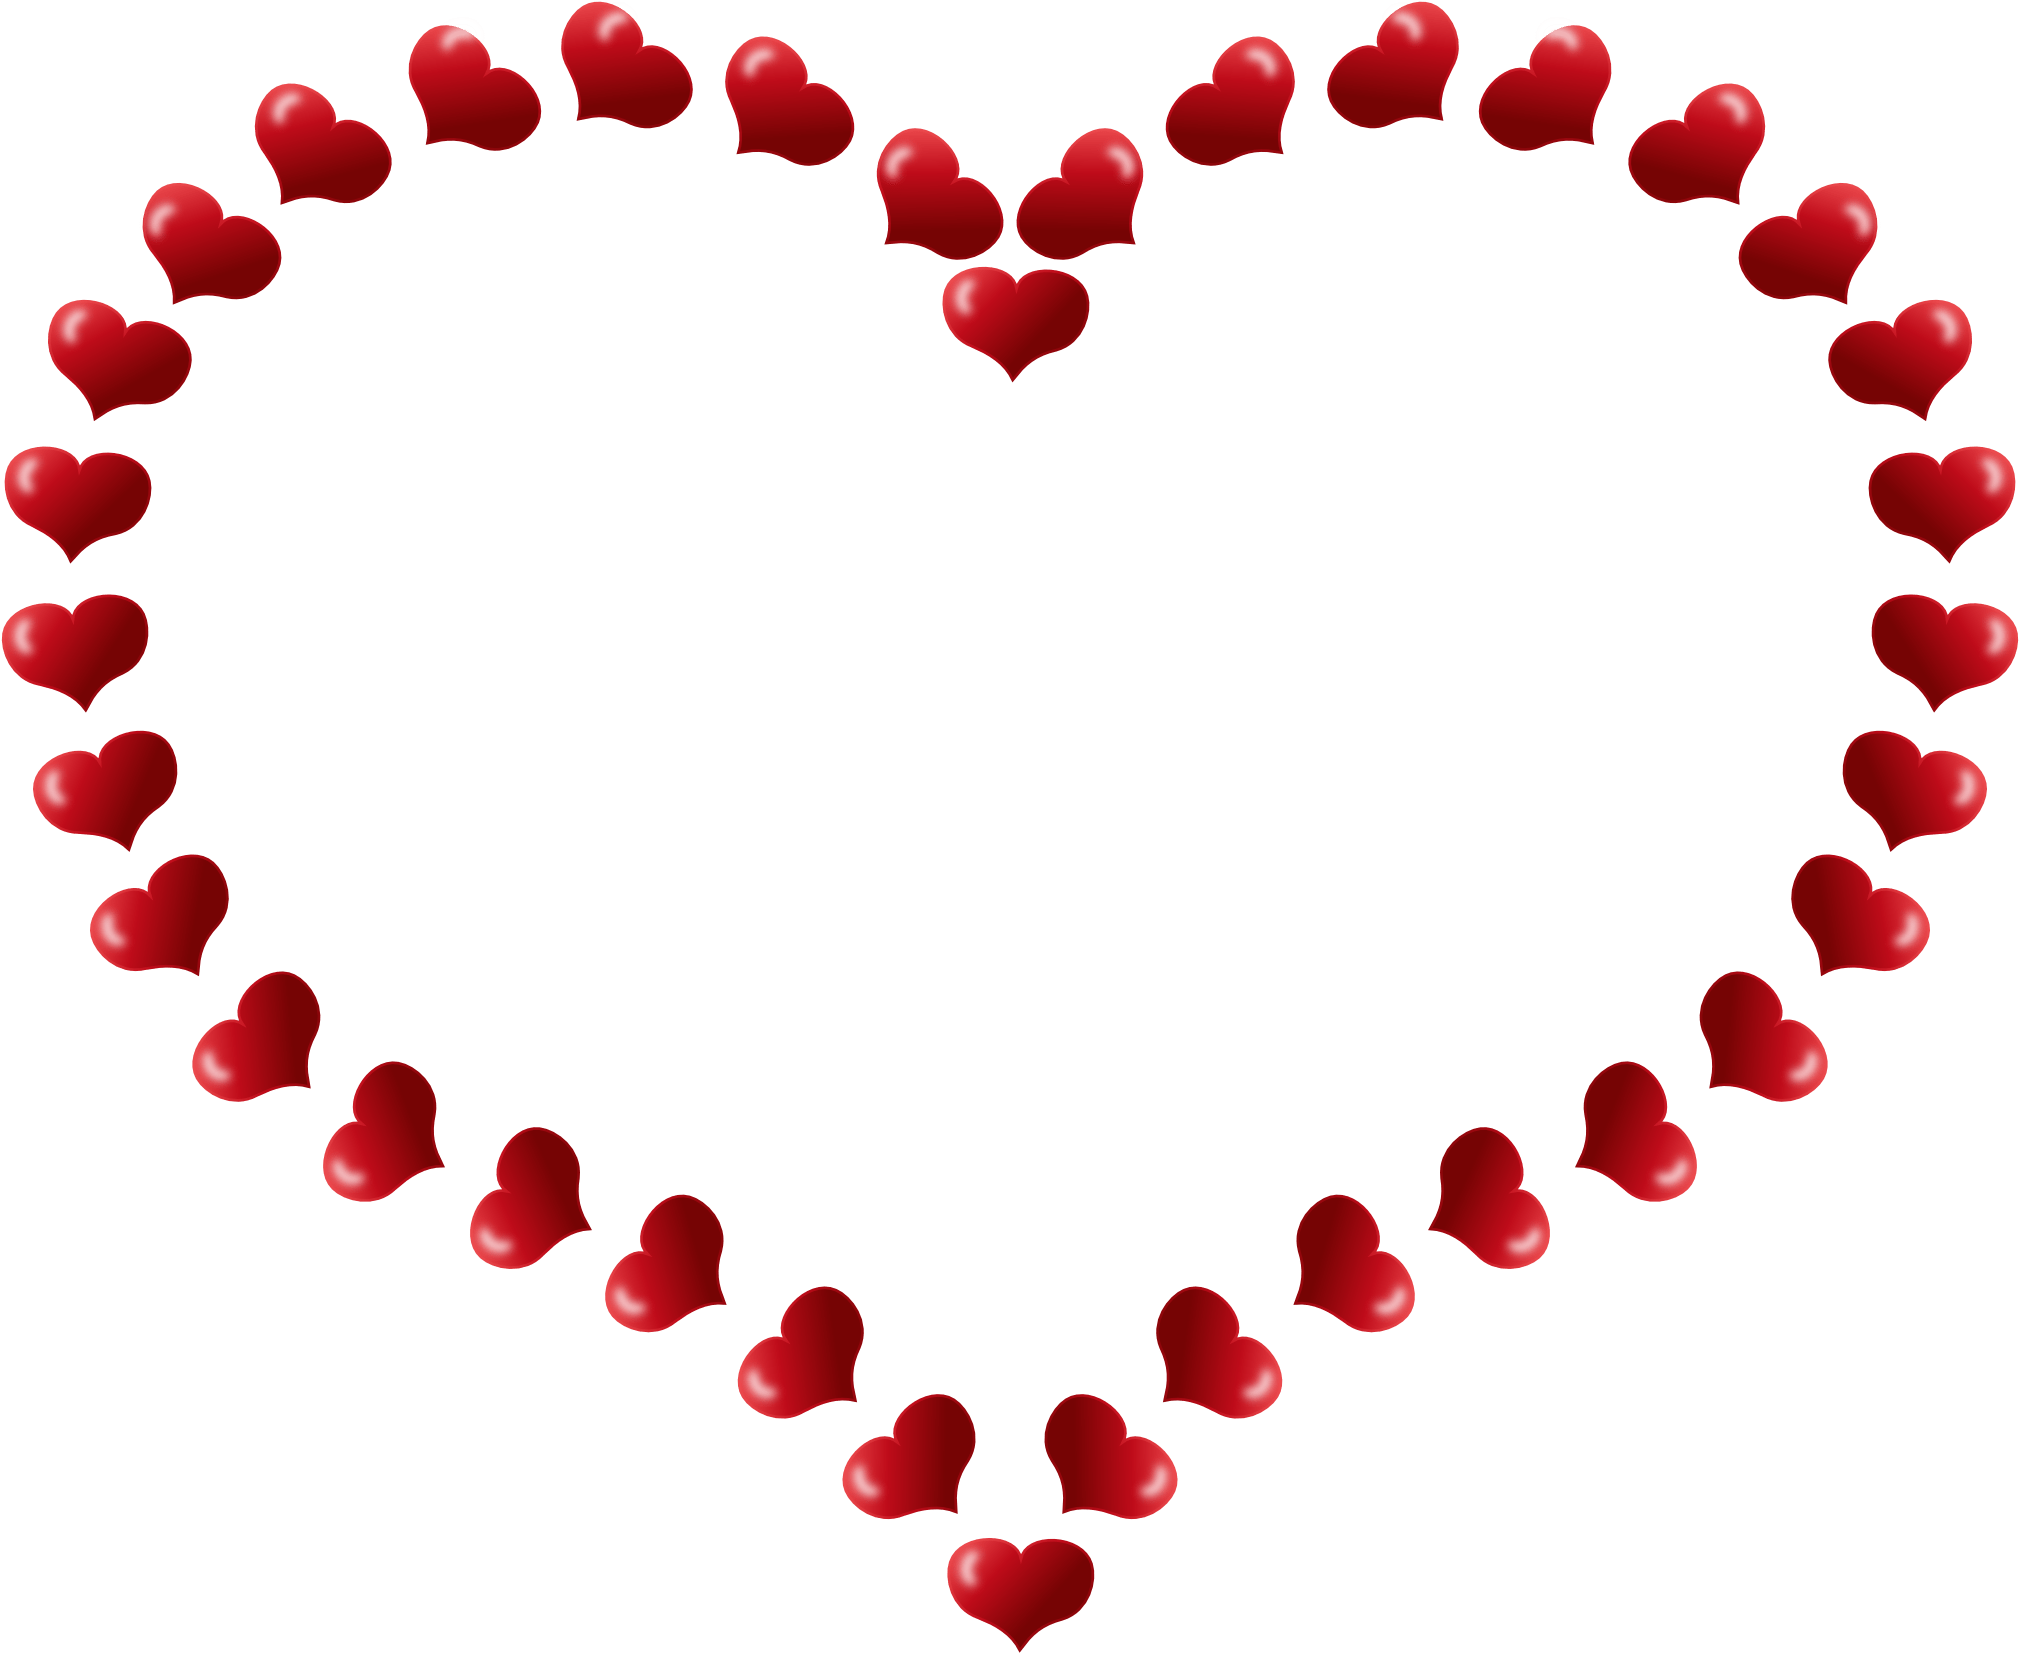 Hearts transparent png. Heart outline on fire